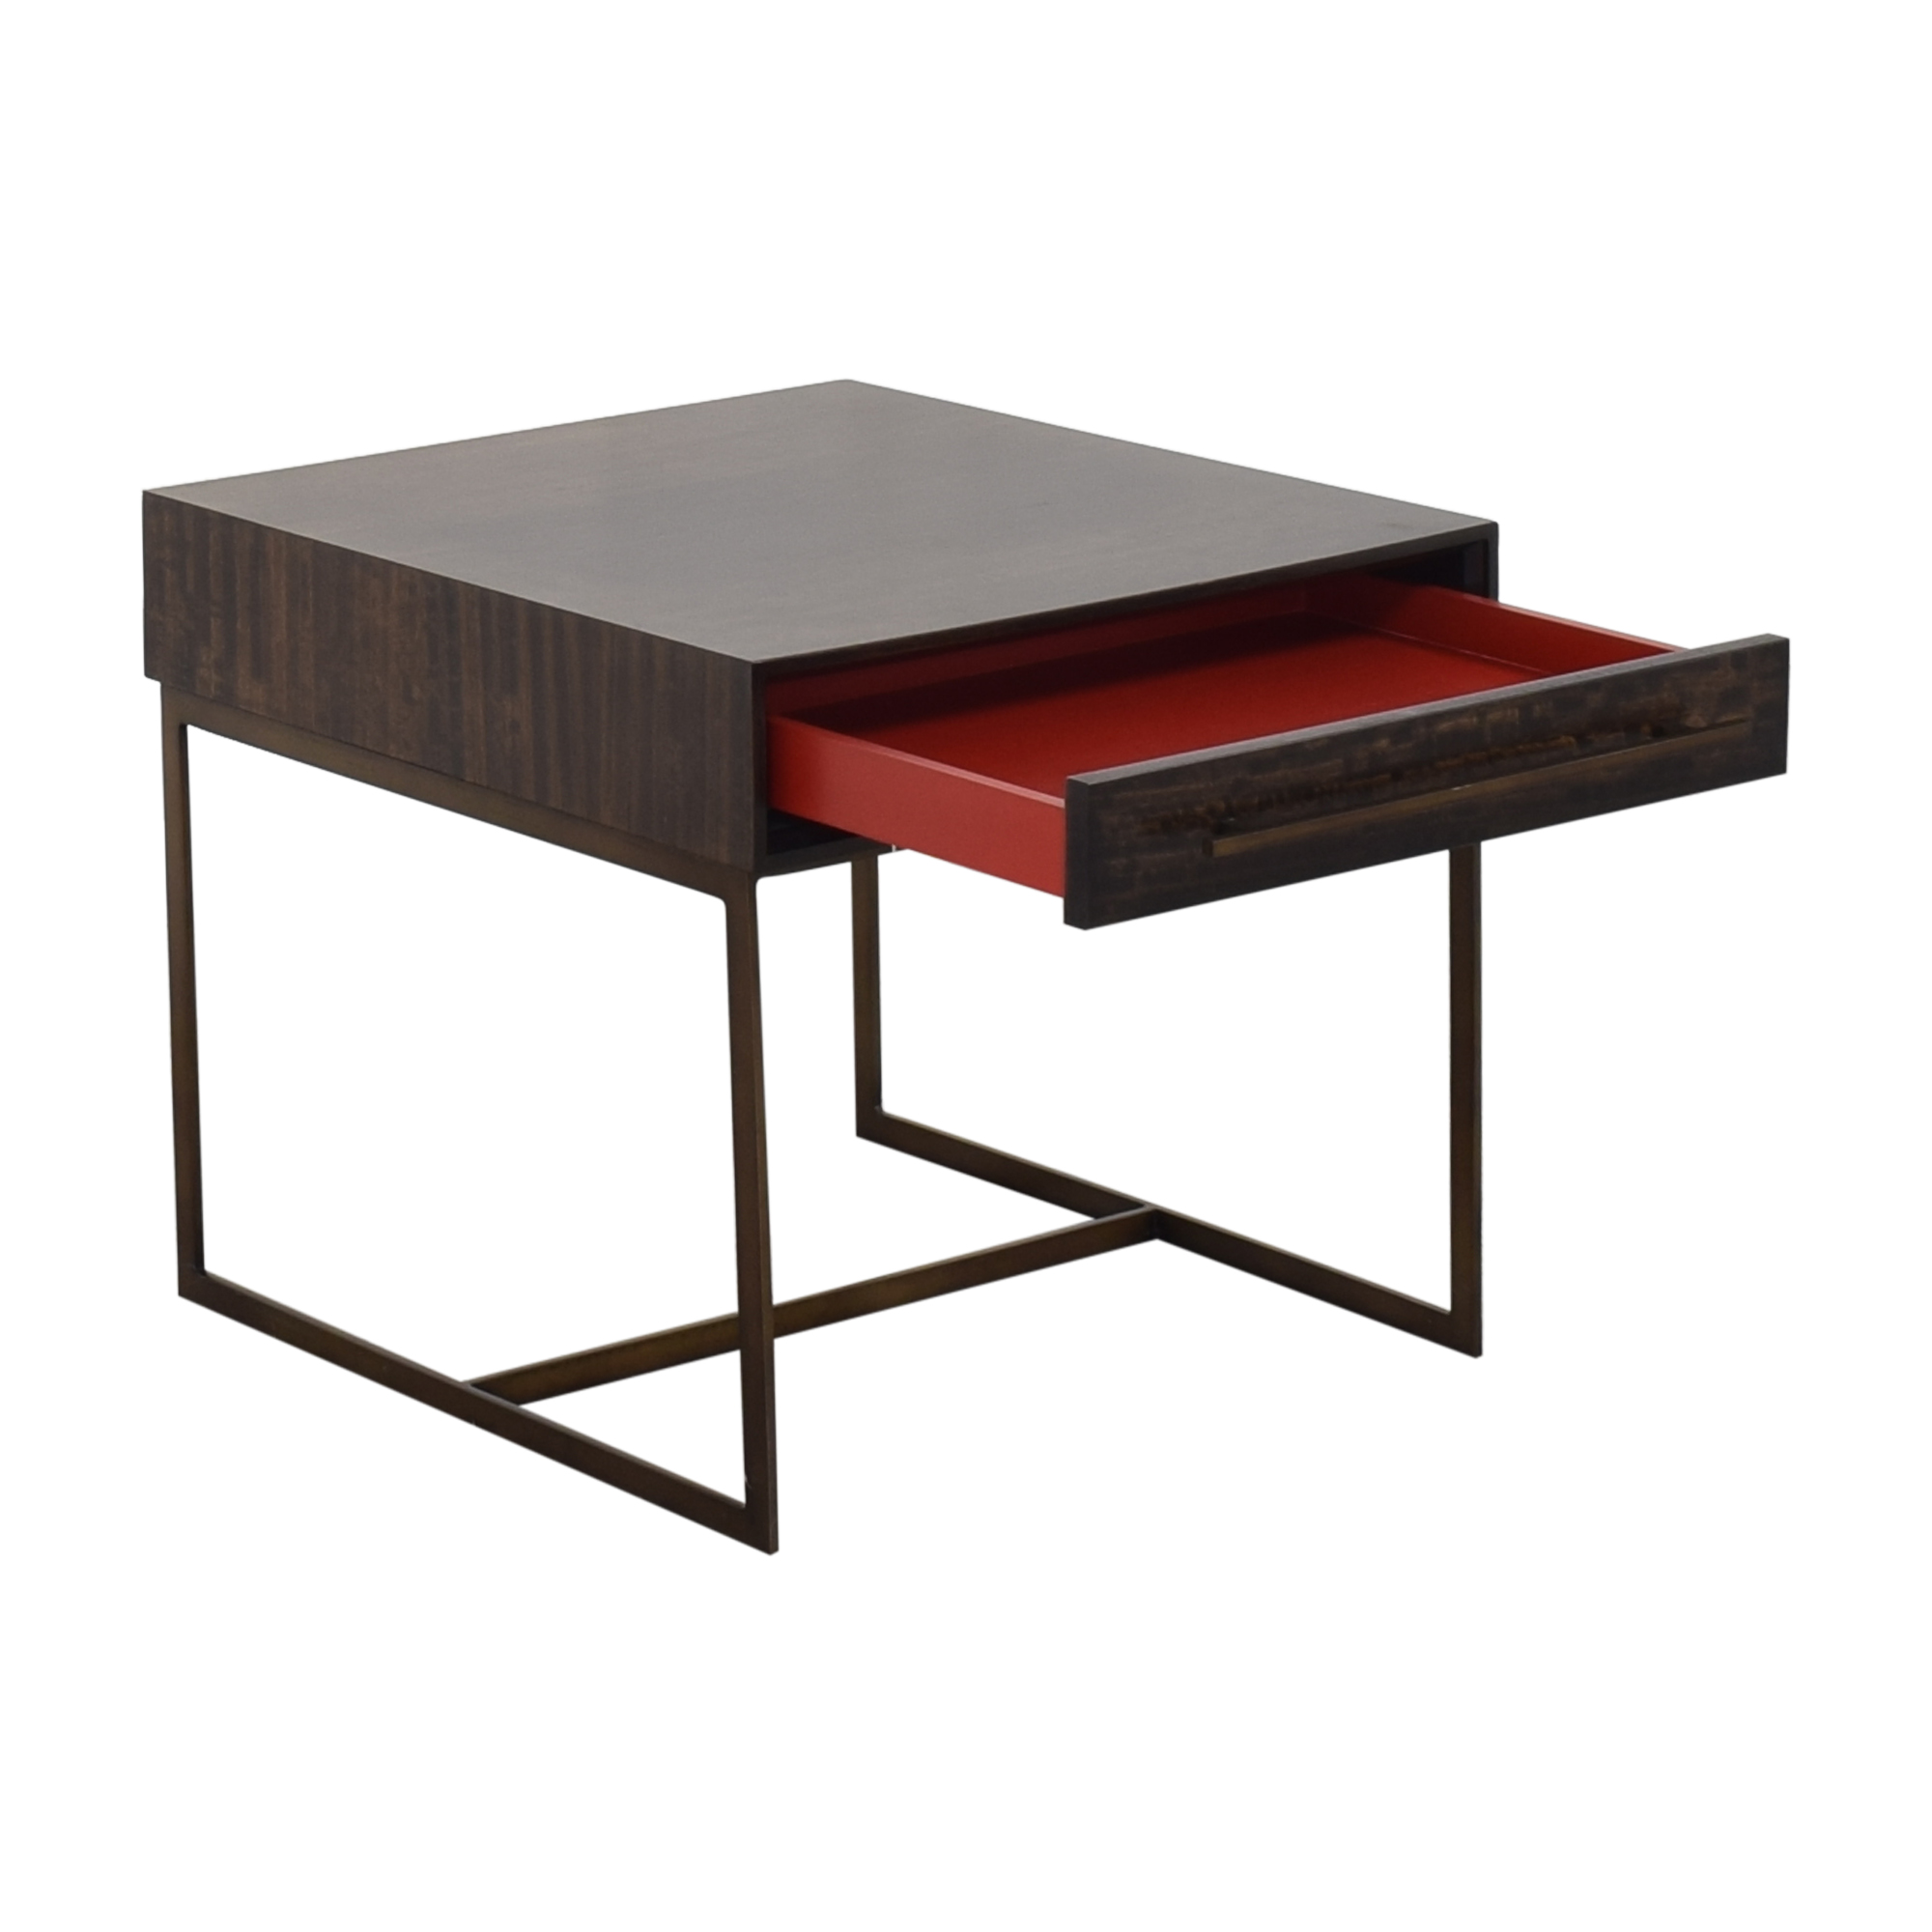 Mitchell Gold + Bob Williams Mitchell Gold + Bob Williams Allure Drawer Side Table second hand